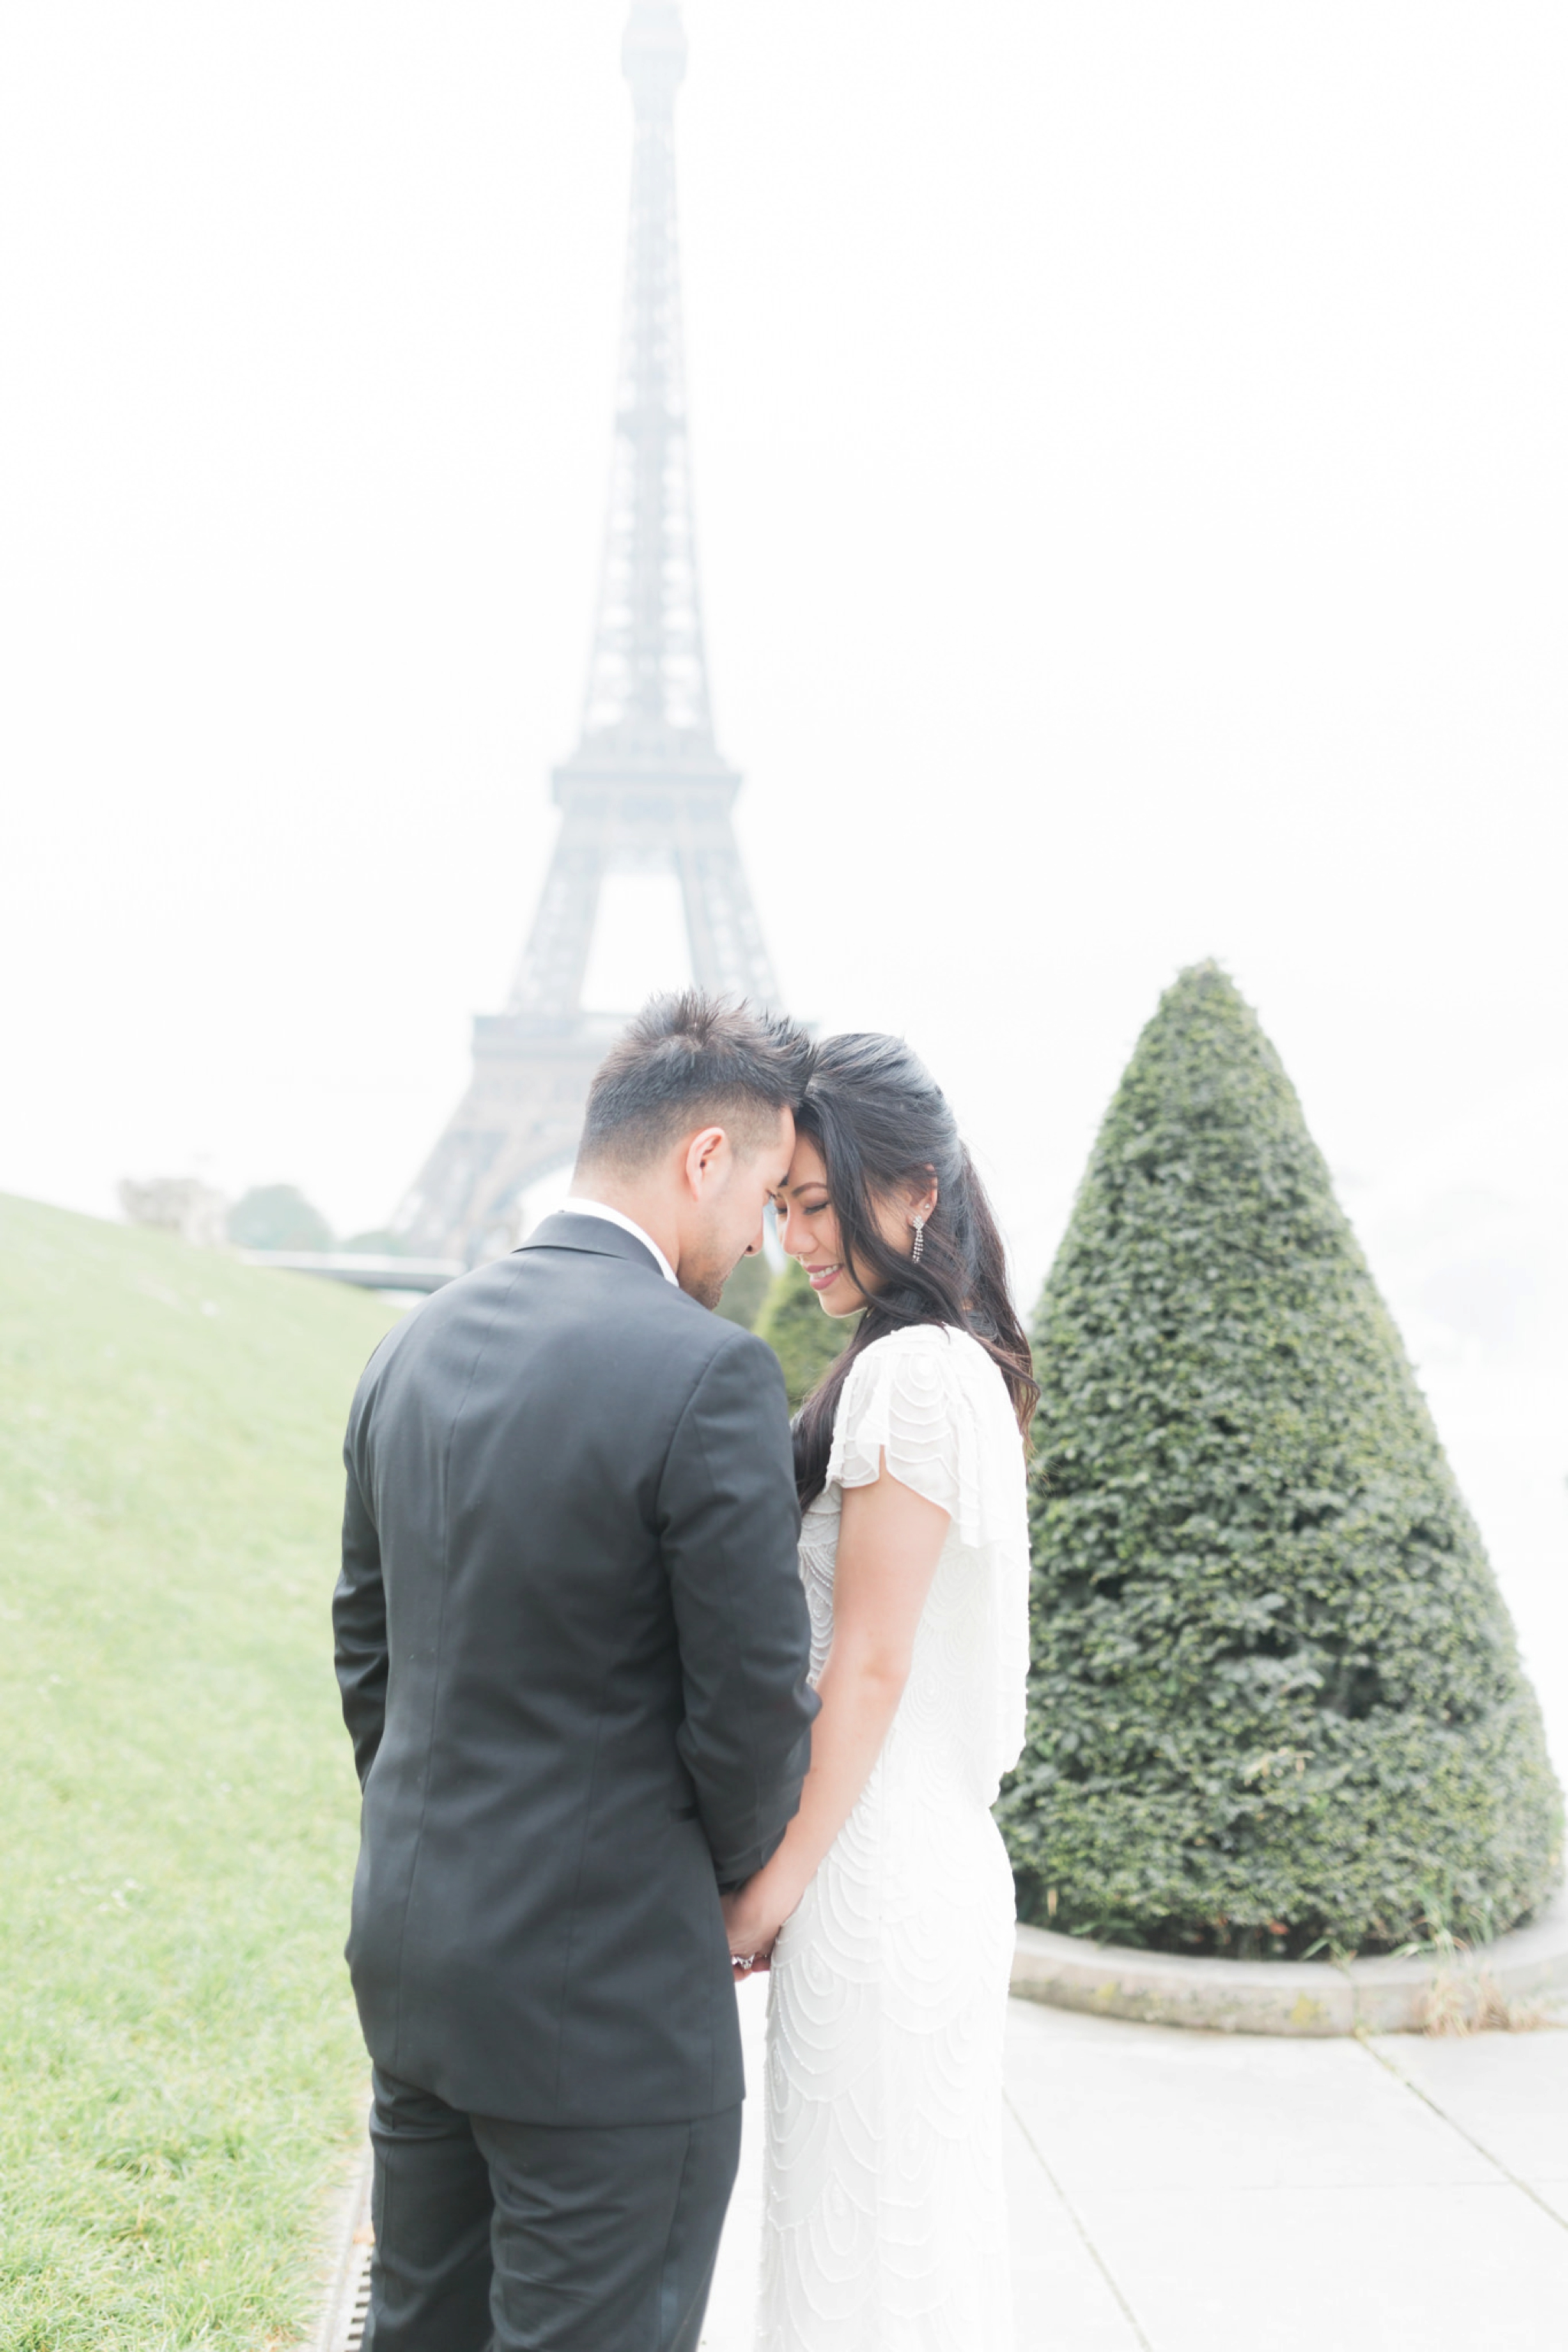 Suzanne_li_photography_paris_engagement_shoot_0035.jpg